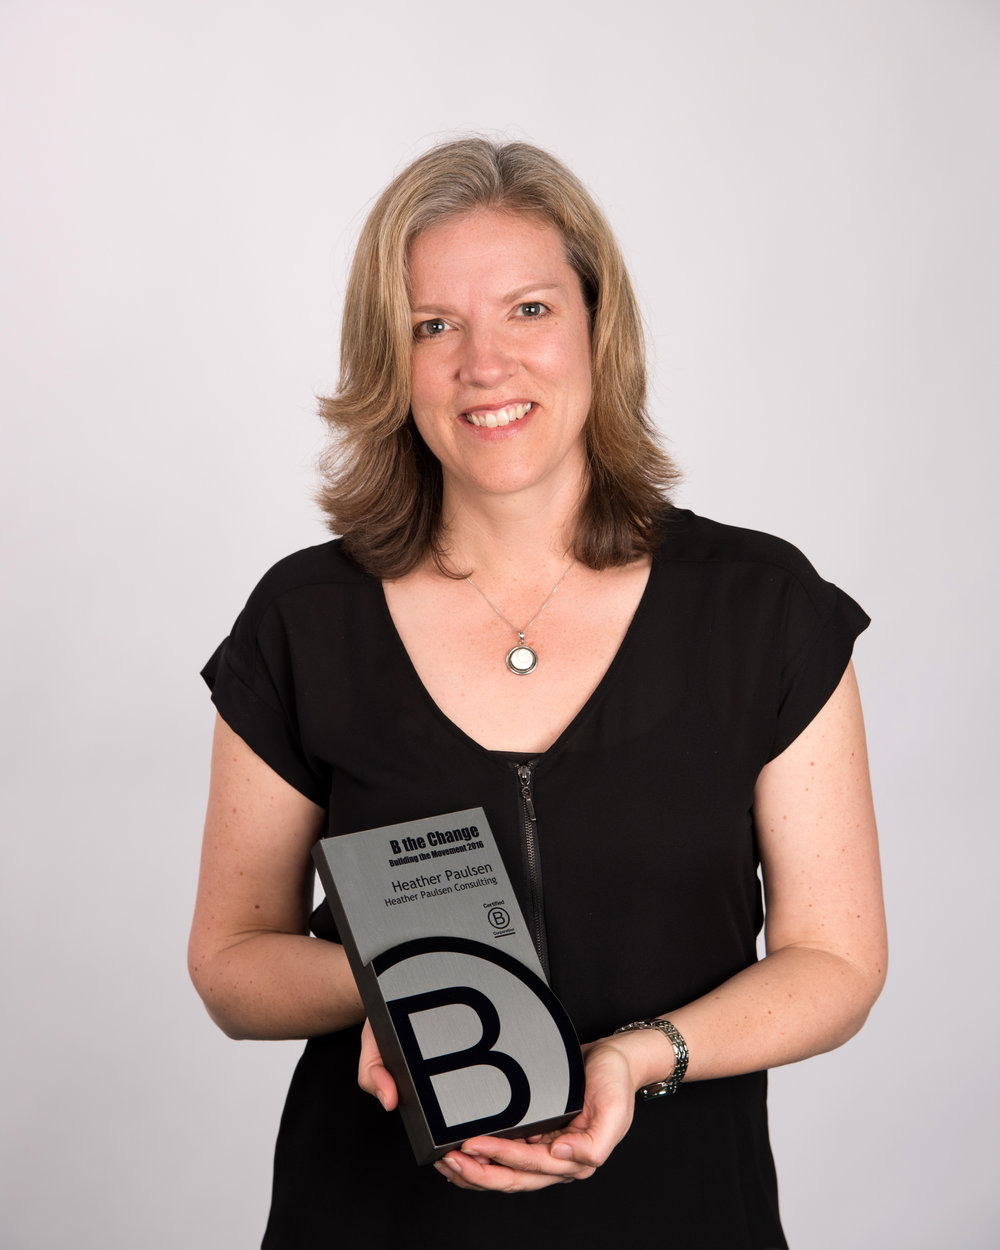 Heather Paulsen B Corp Award